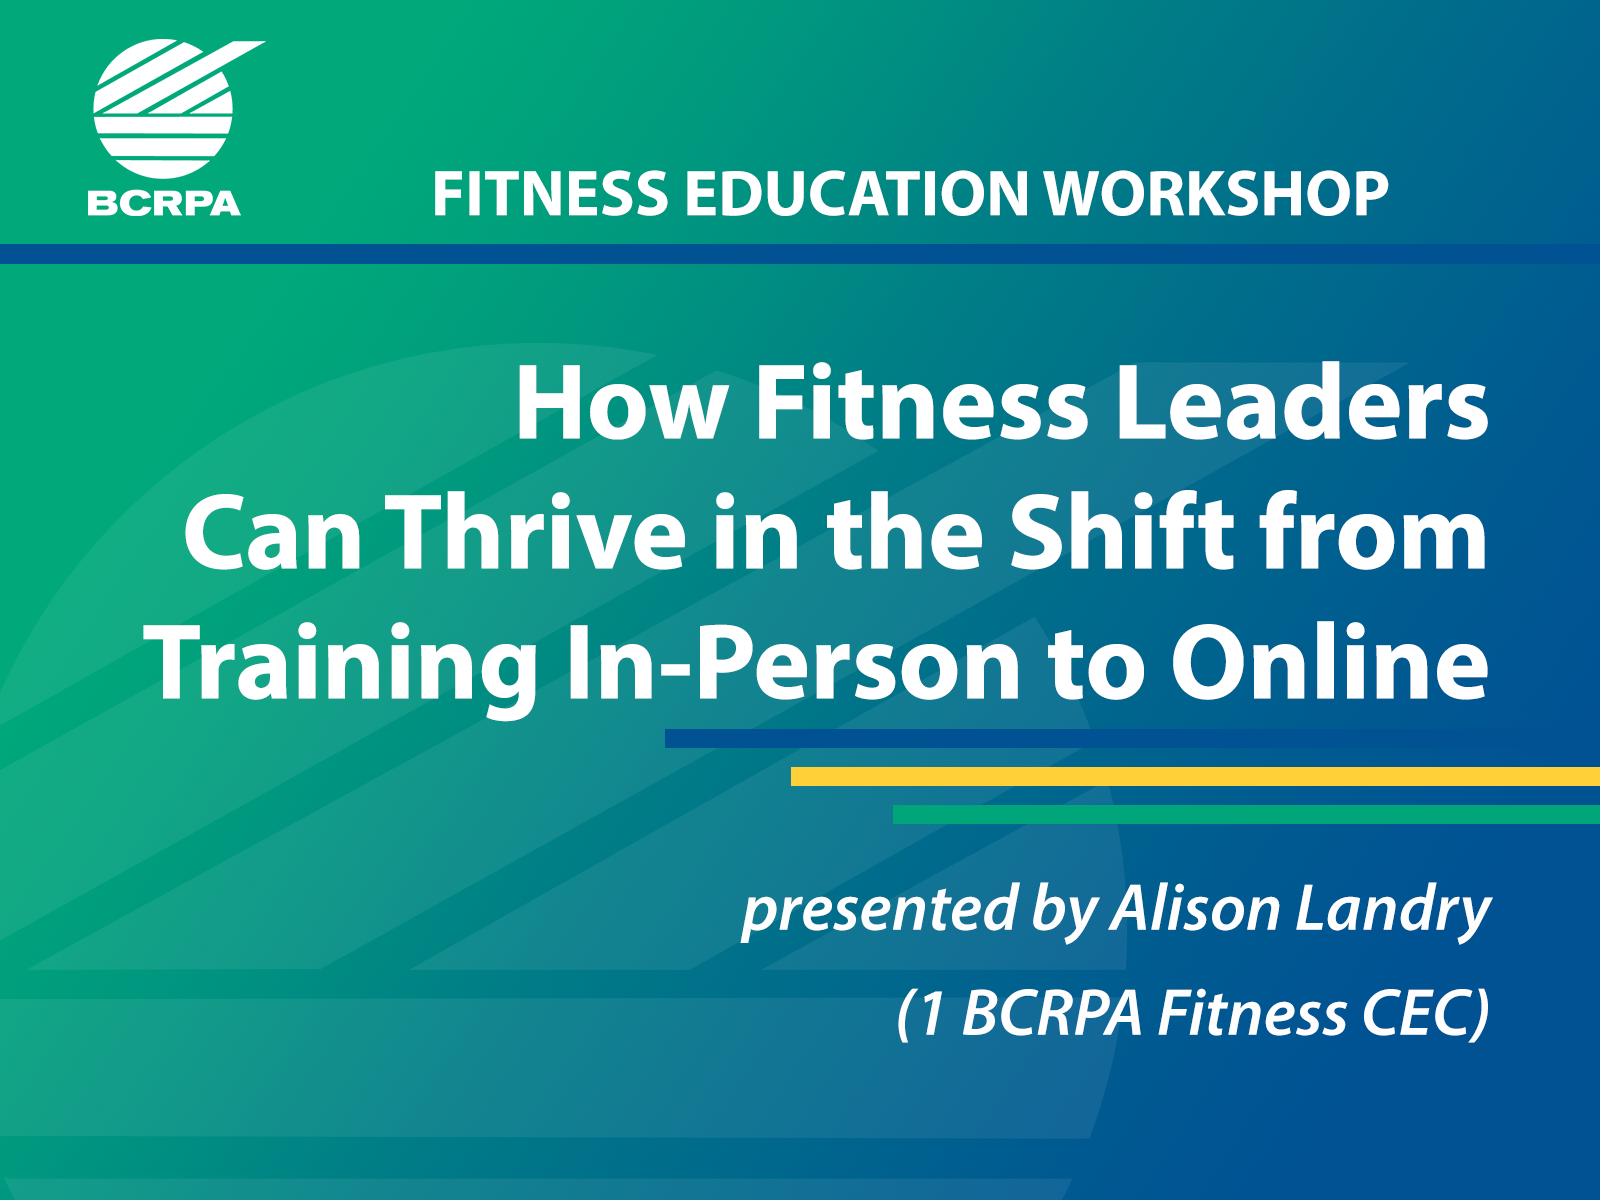 How Fitness Leaders Can Thrive in the Shift from Training In-Person to Online